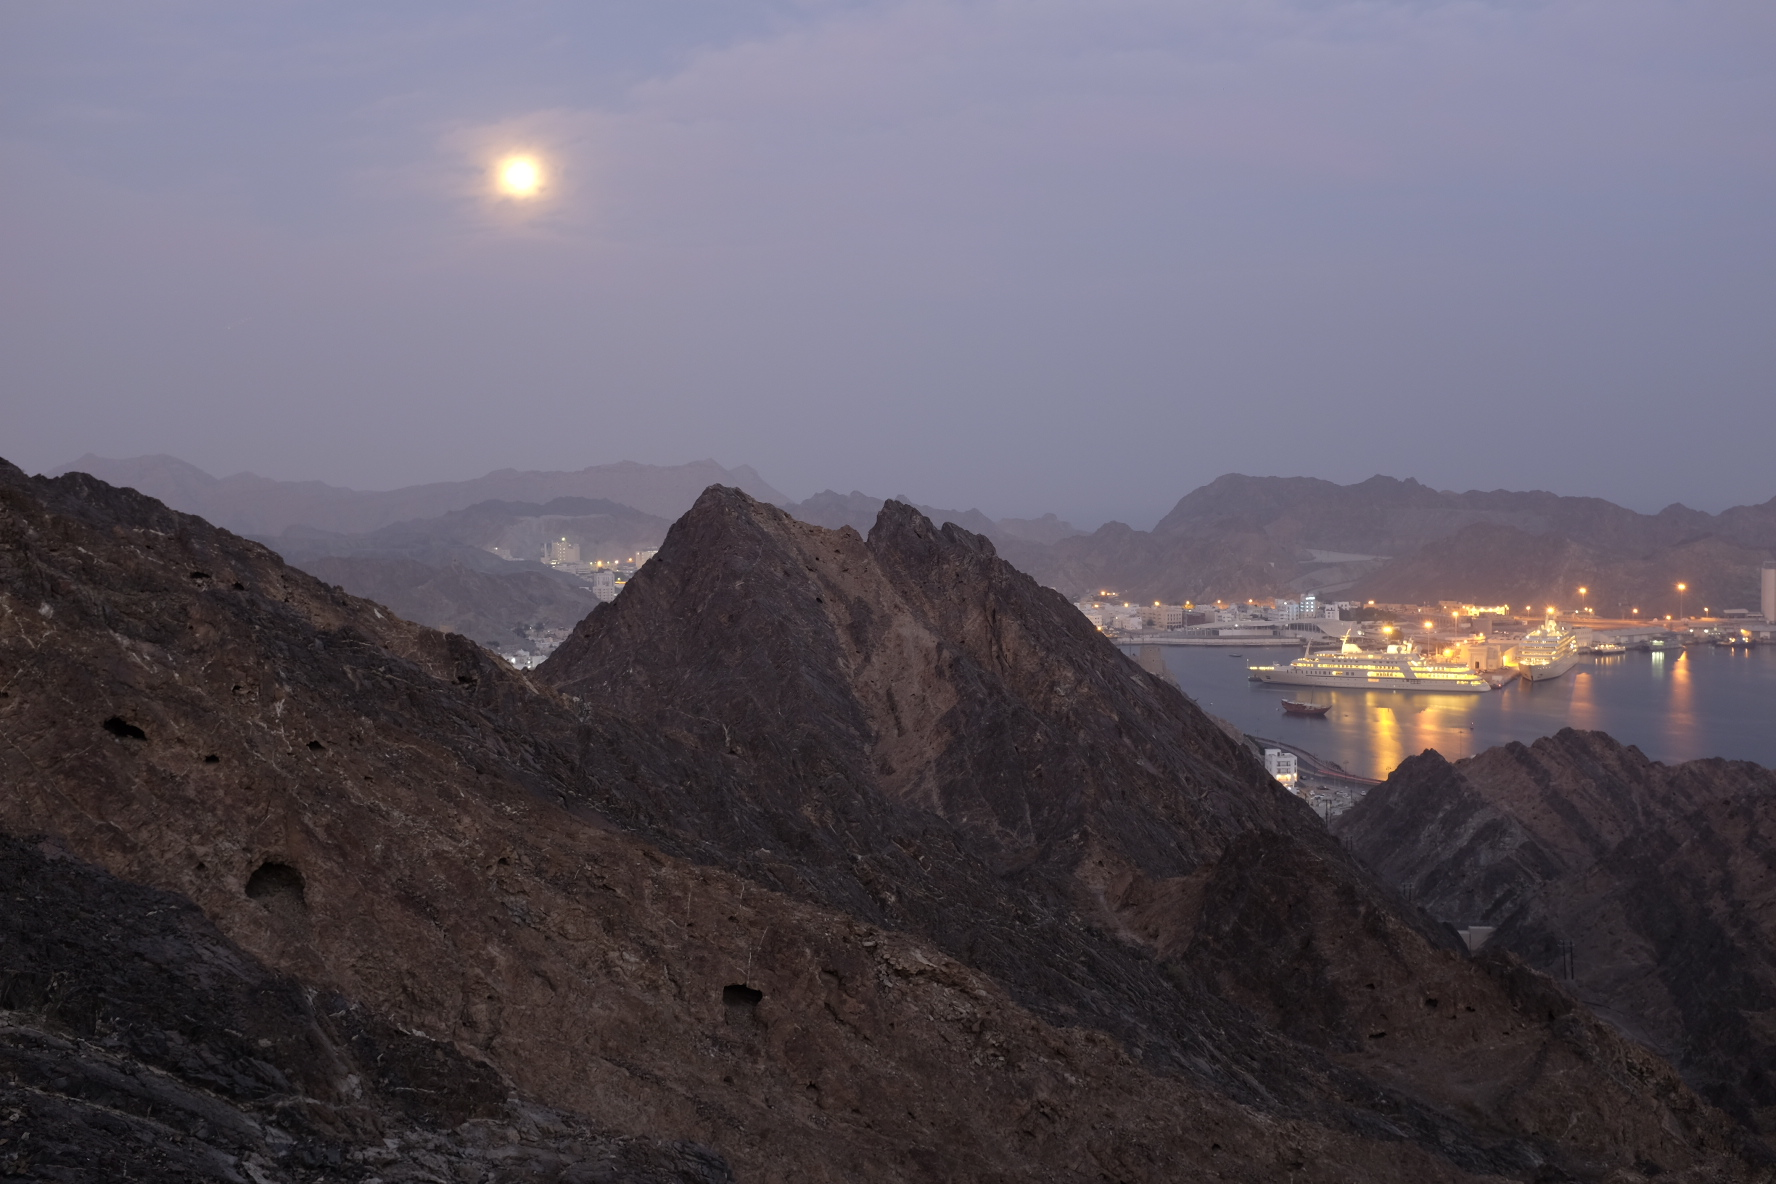 Moonset over Mutrah